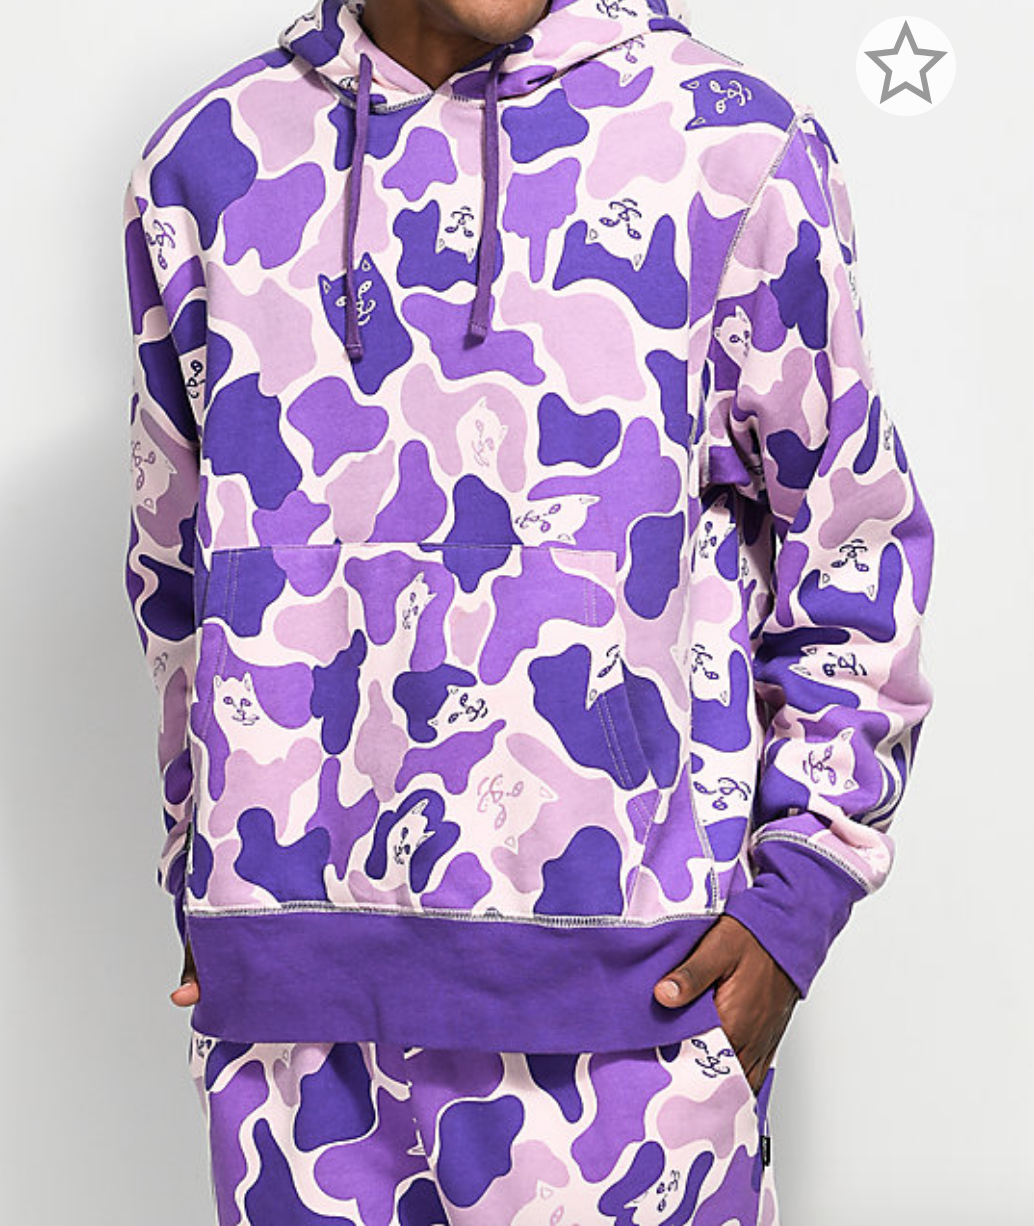 88cce1bd803b RIPNDIP Invisible Purple Camo Hoodie in 2019